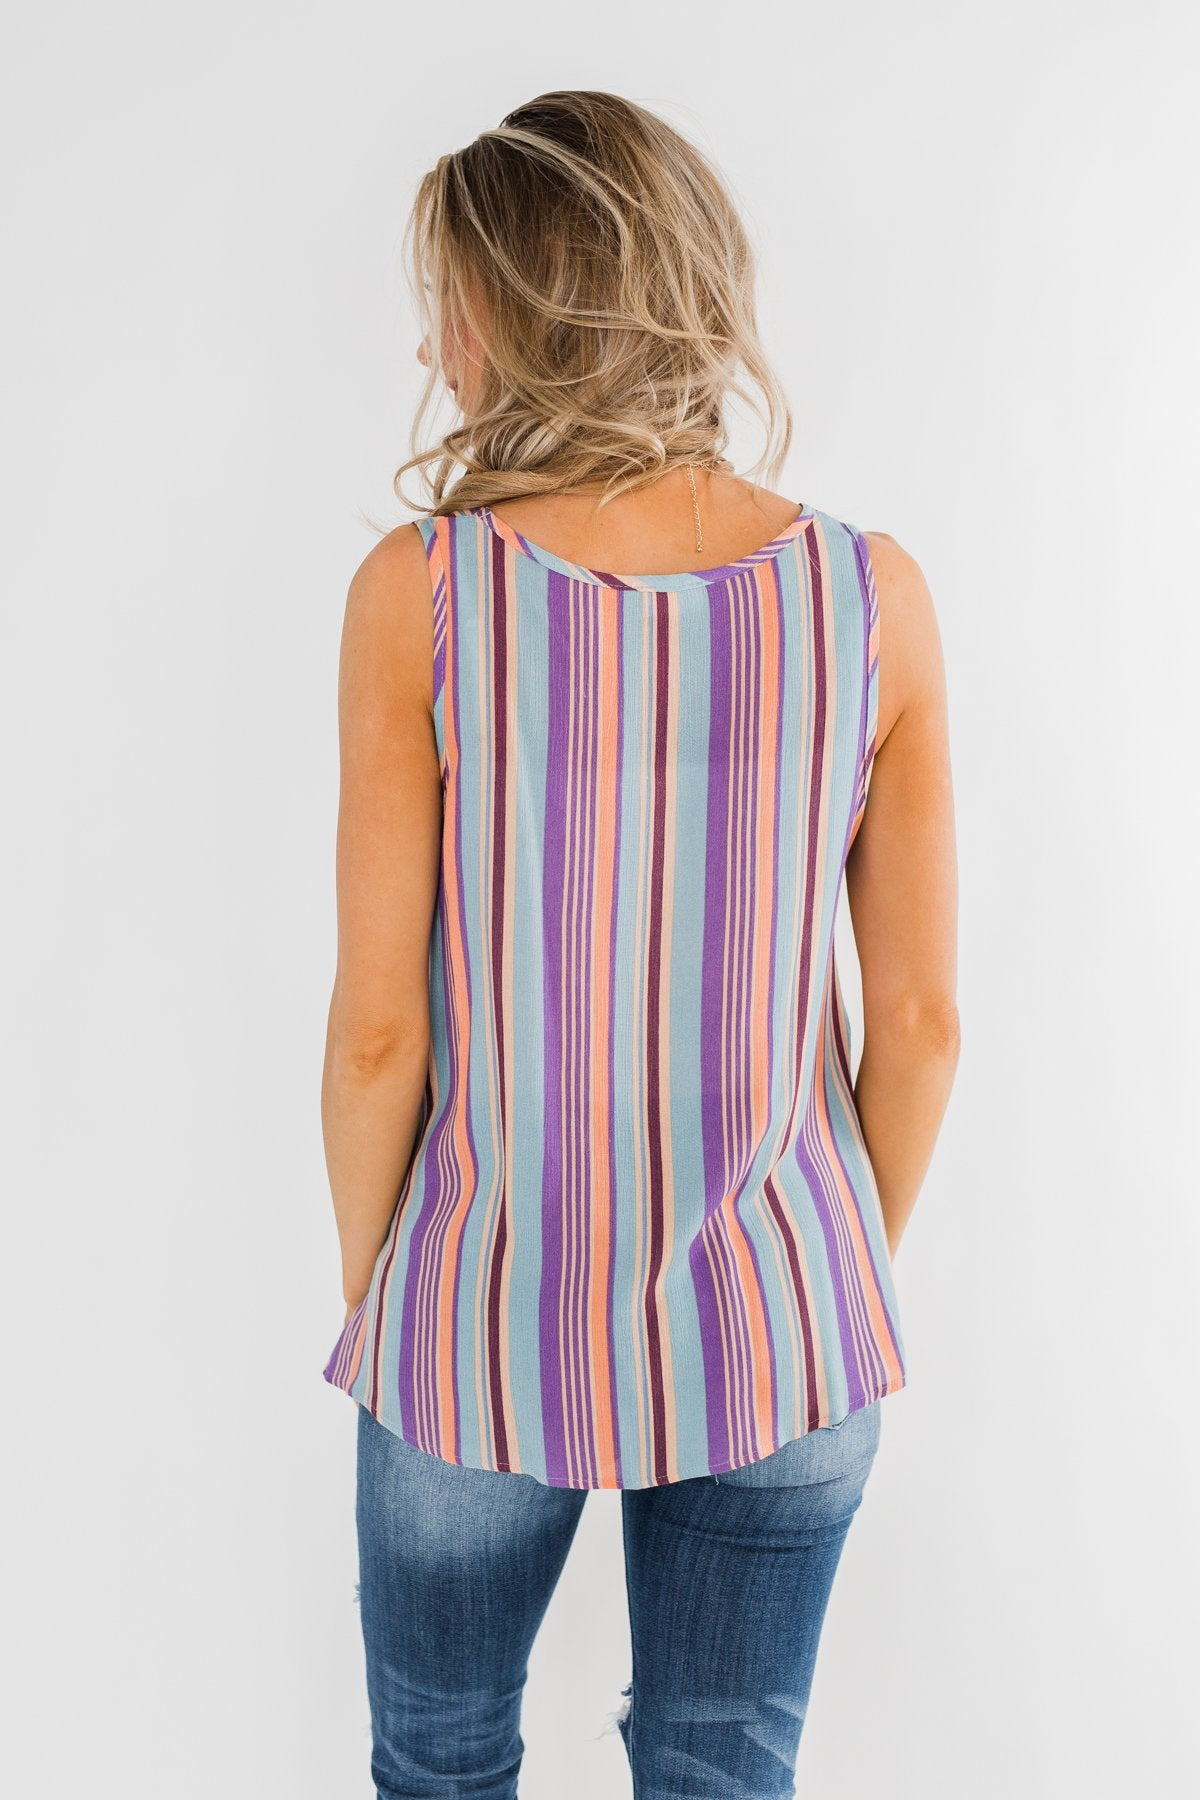 Sounds Good To Me Striped Tank Top- Light Blue & Orange Tones